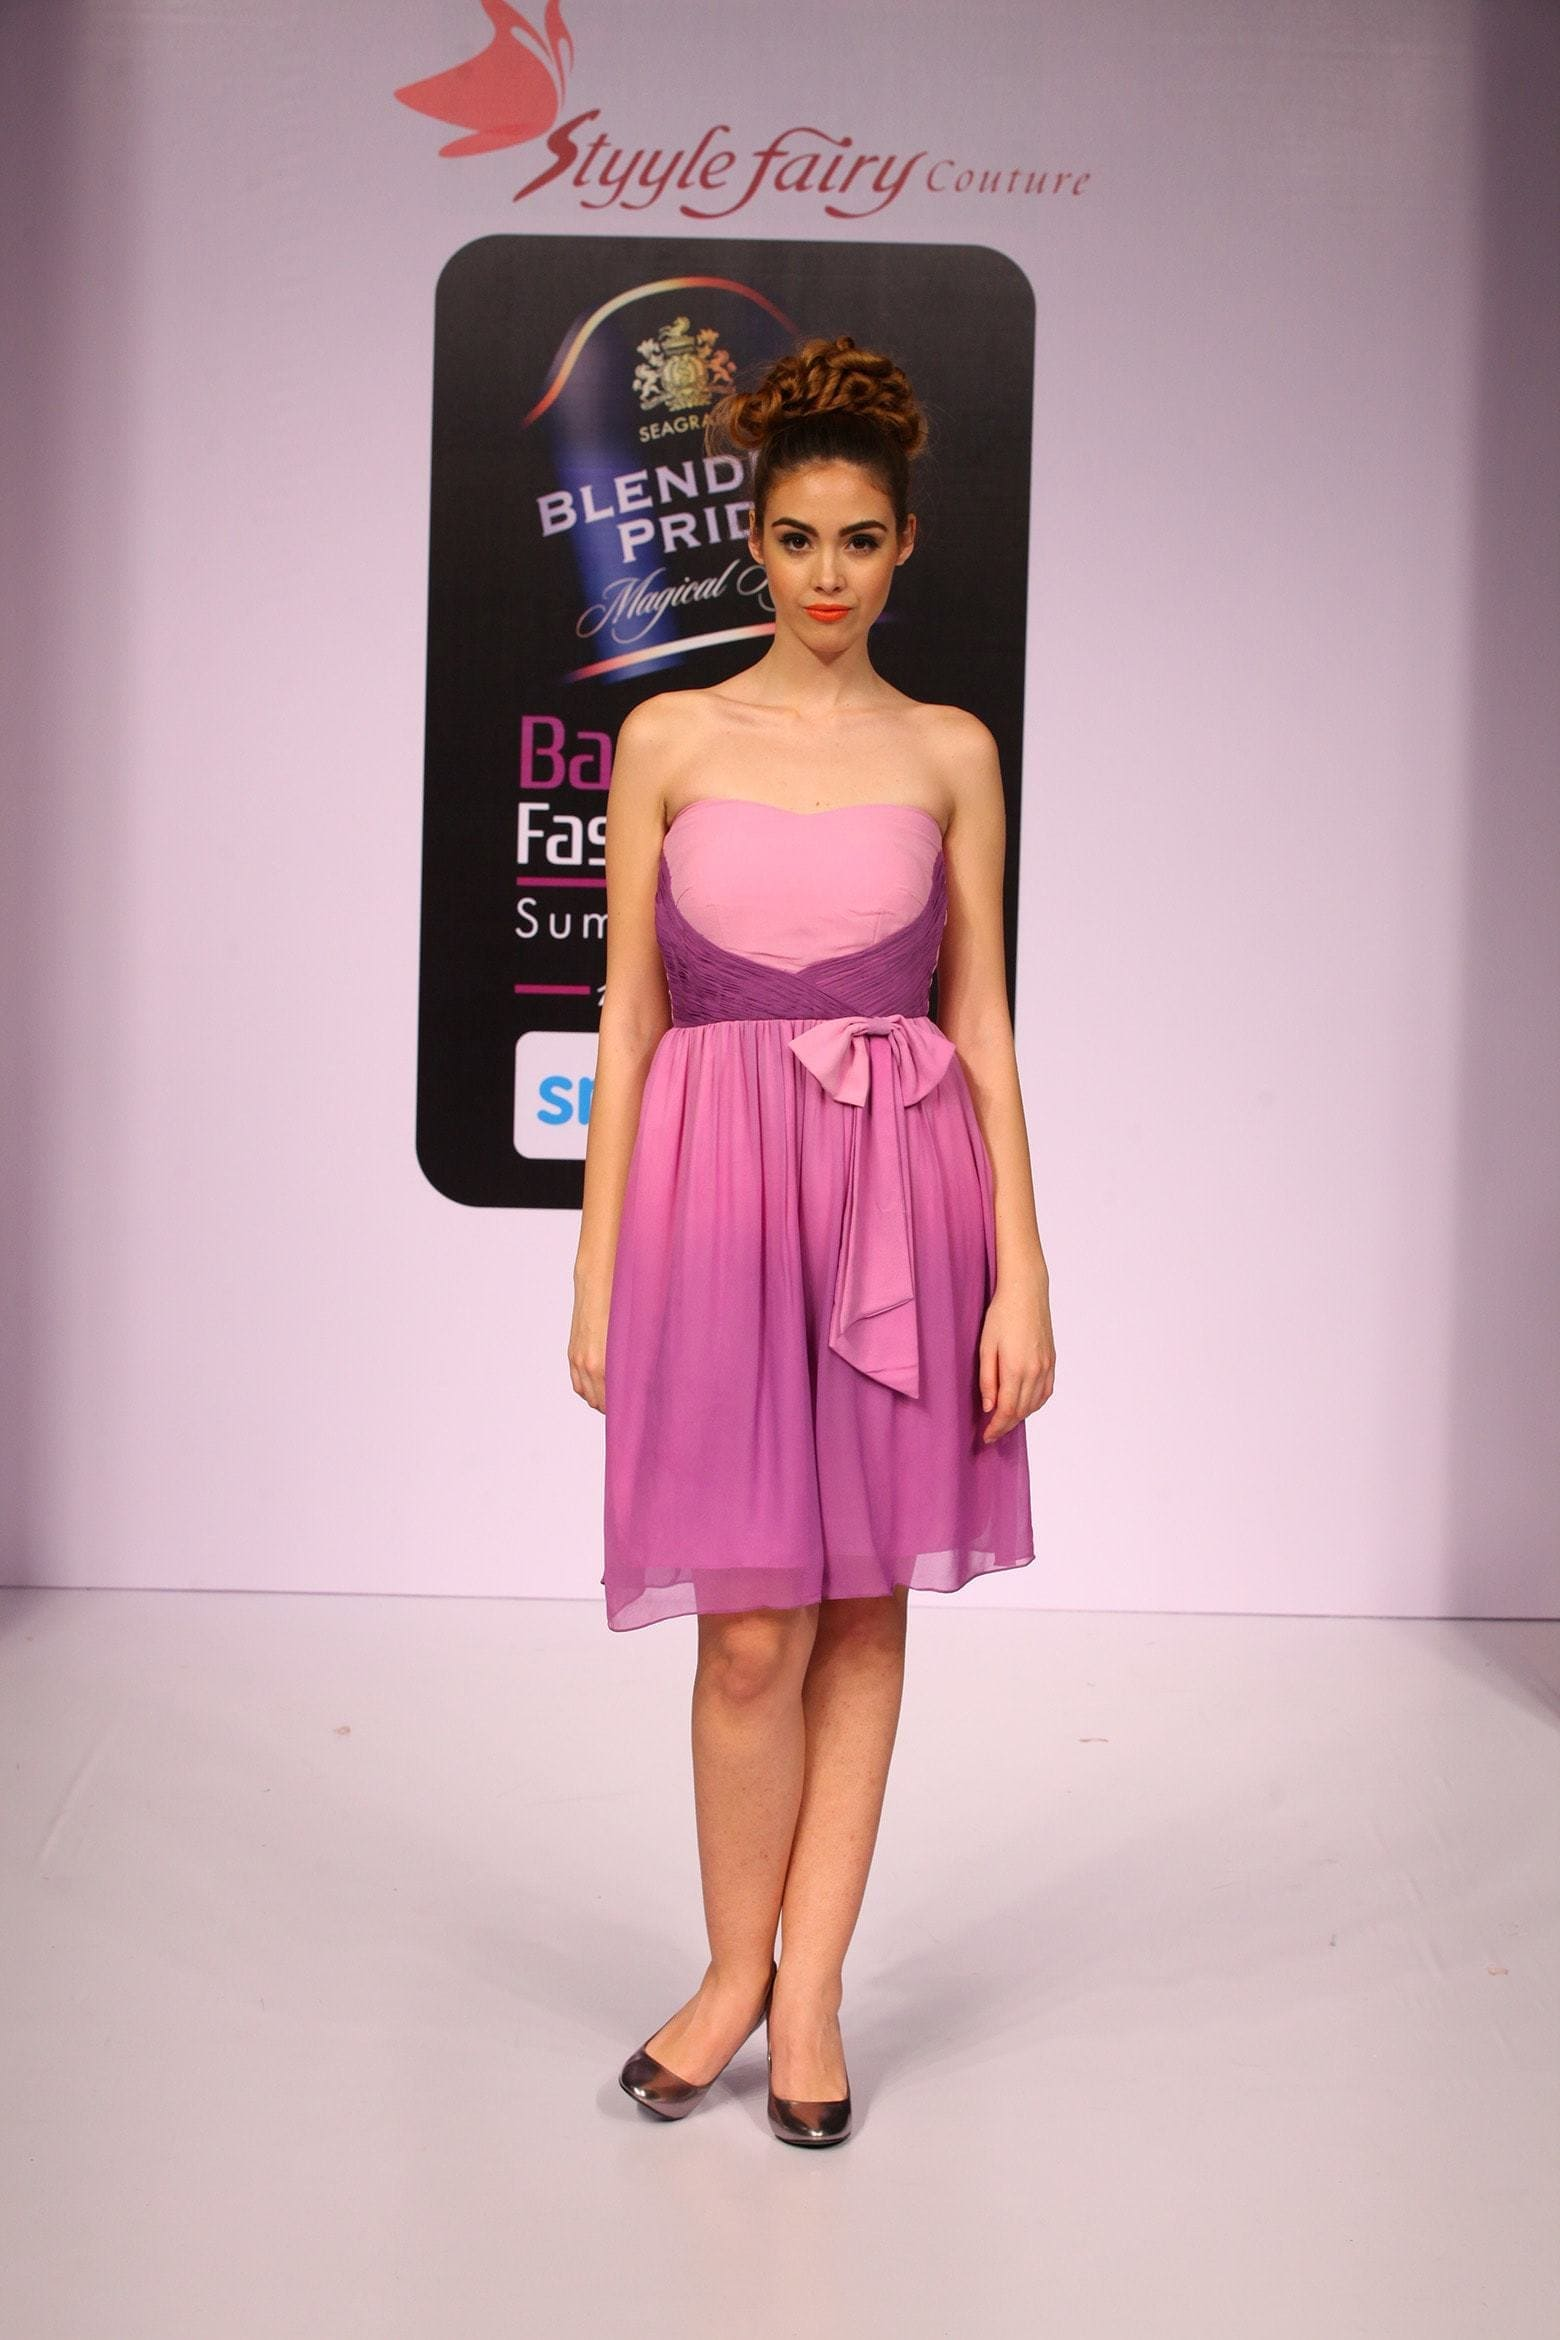 Evening Dress in ombre dyed shades of lavender